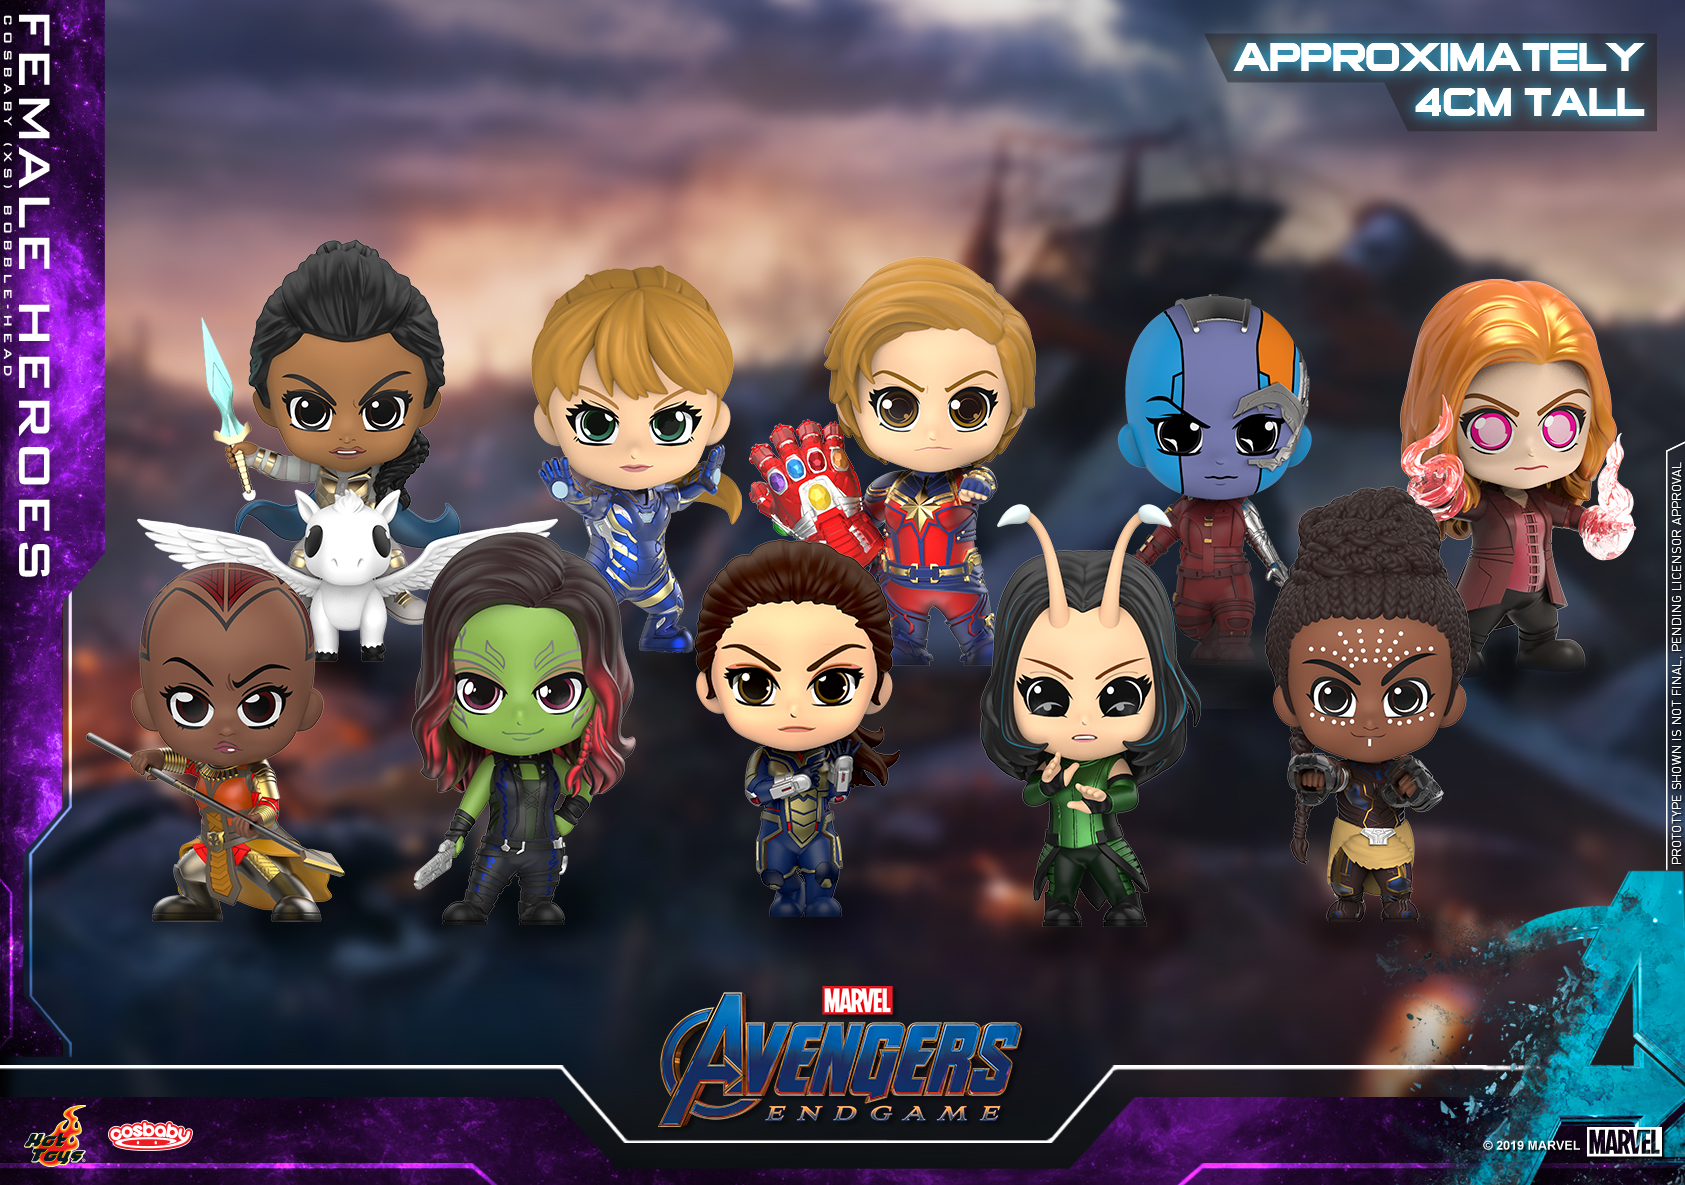 Hot Toys - Avengers Endgame - Female Heroes Cosbaby (XS) Bobble-Head Collectible Set_PR1